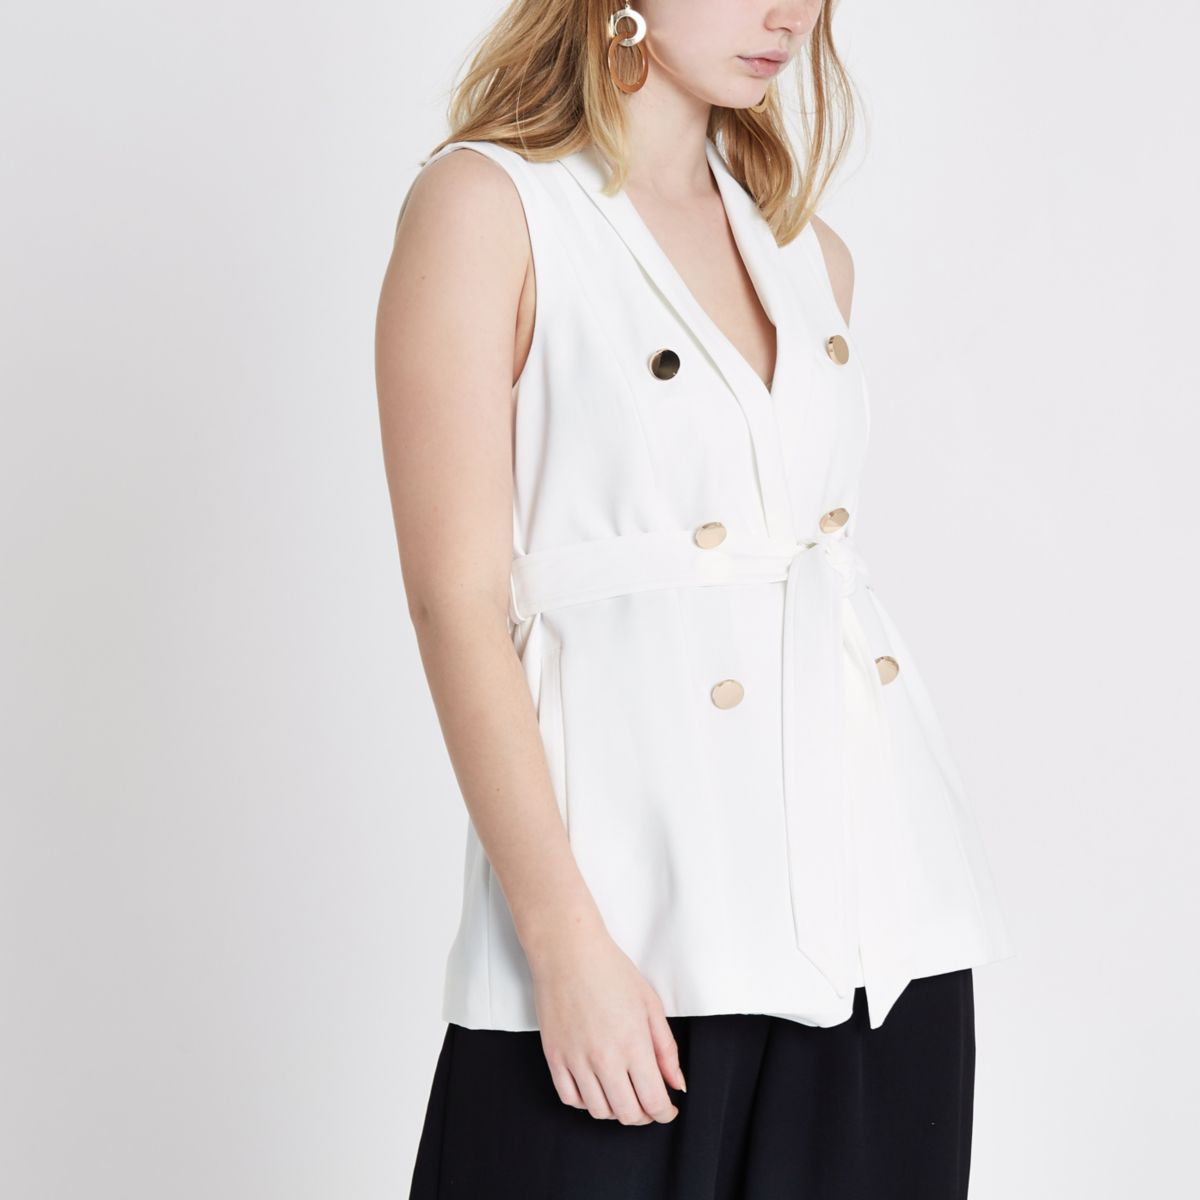 White sleeveless double breasted jacket